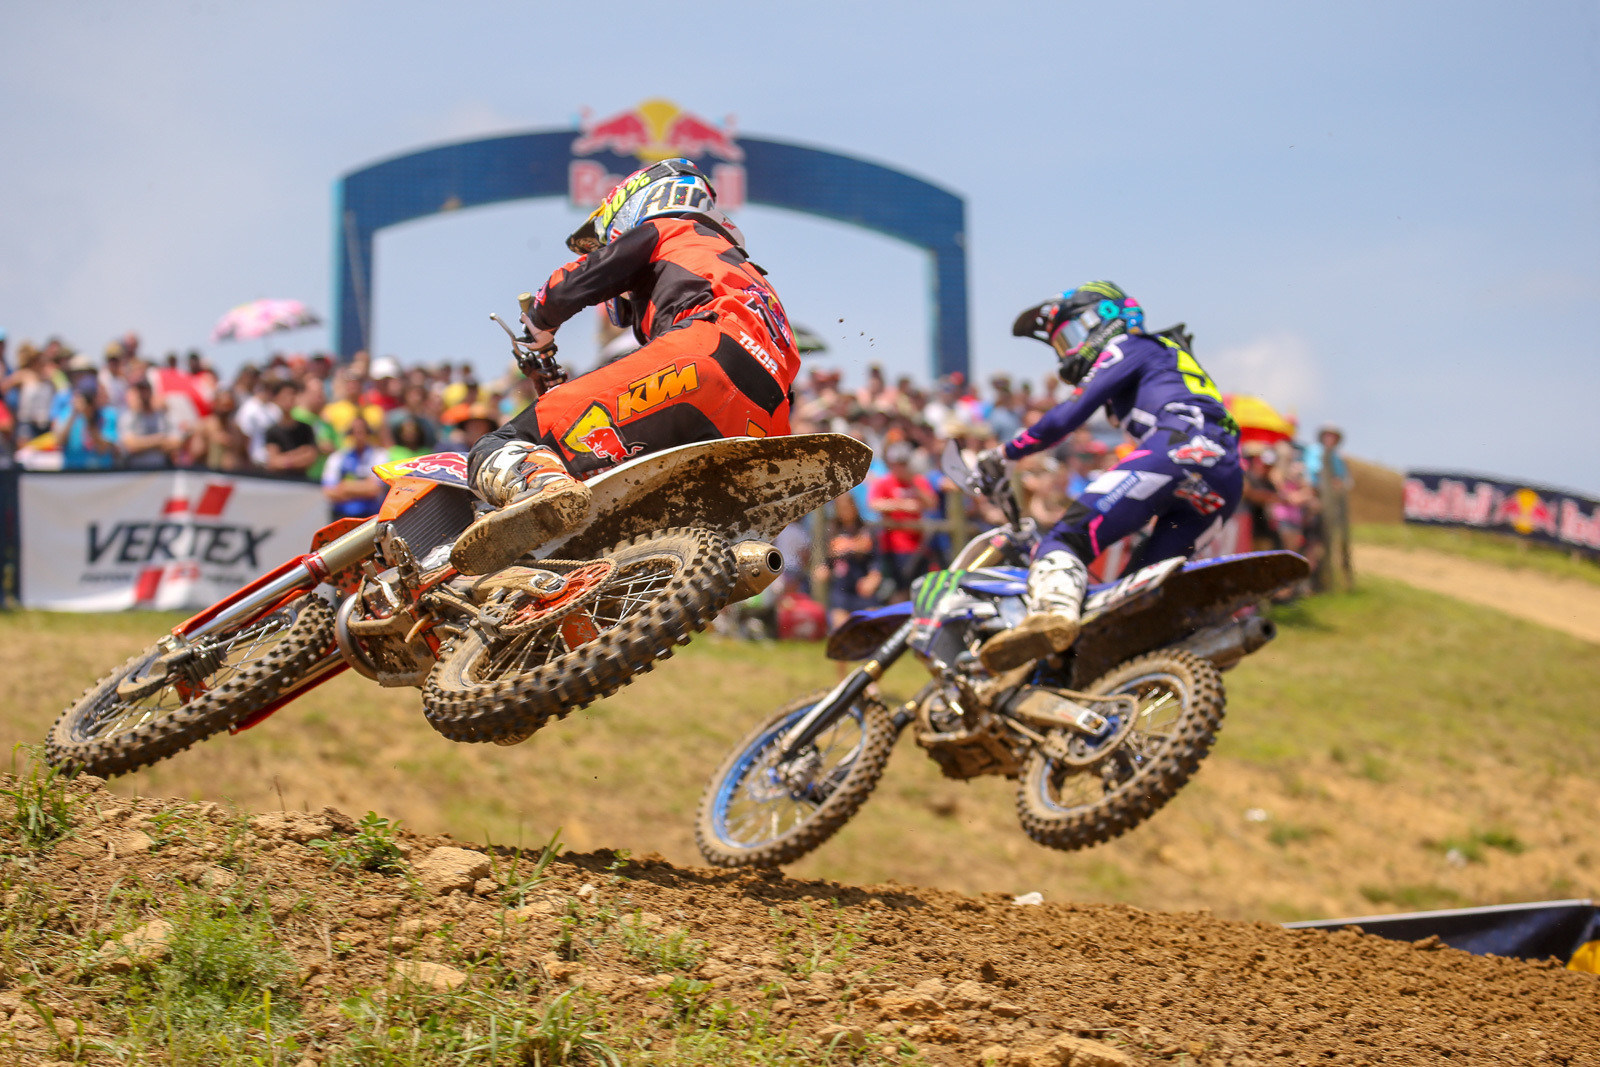 Justin Barcia slipped into second spot early in moto one, but after a little jockeying back and forth, Marvin Musquin got by.